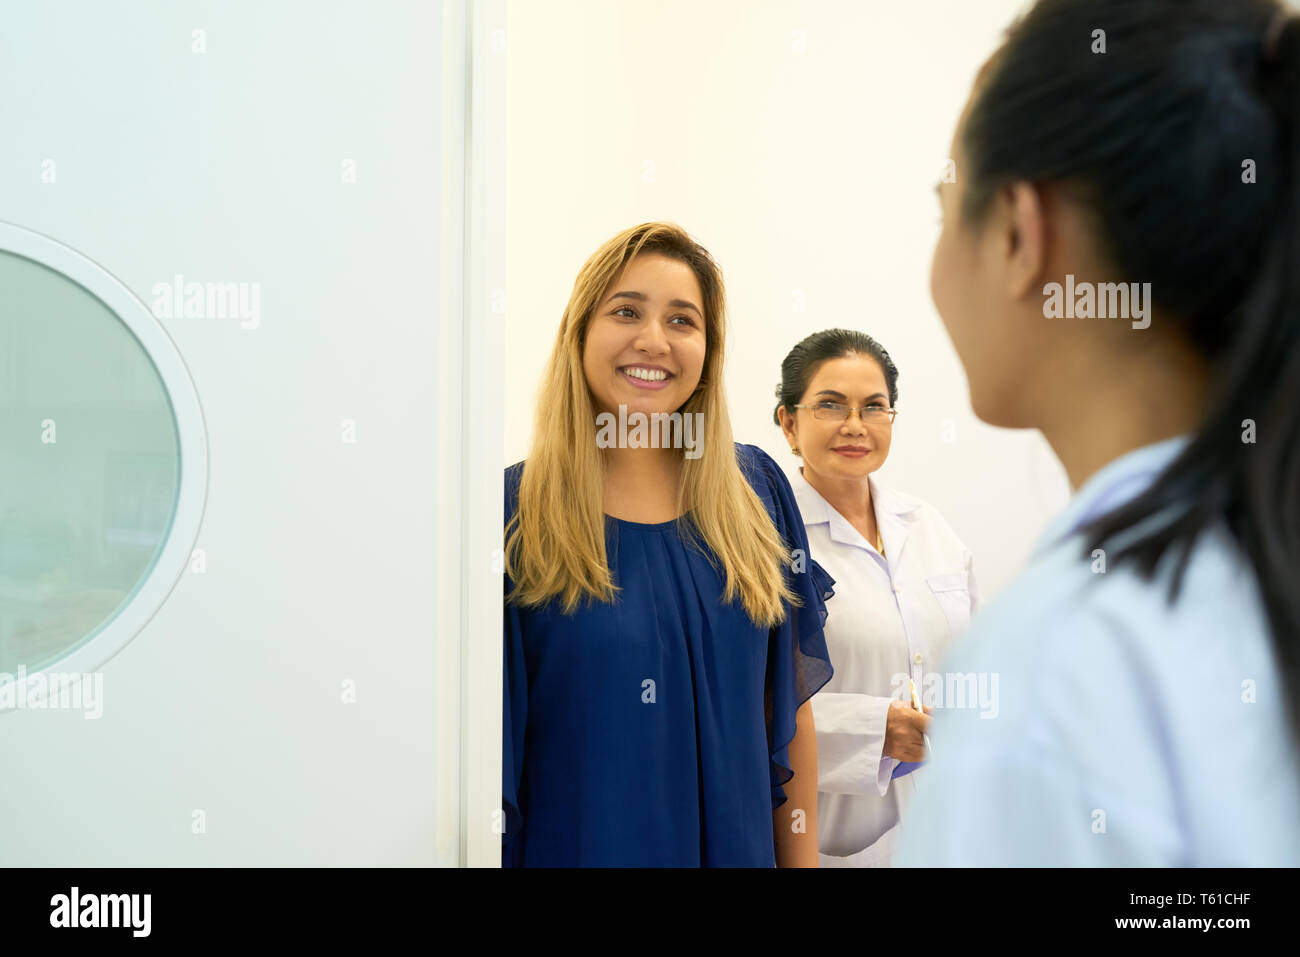 Cheerful woman entering dentistry office - Stock Image